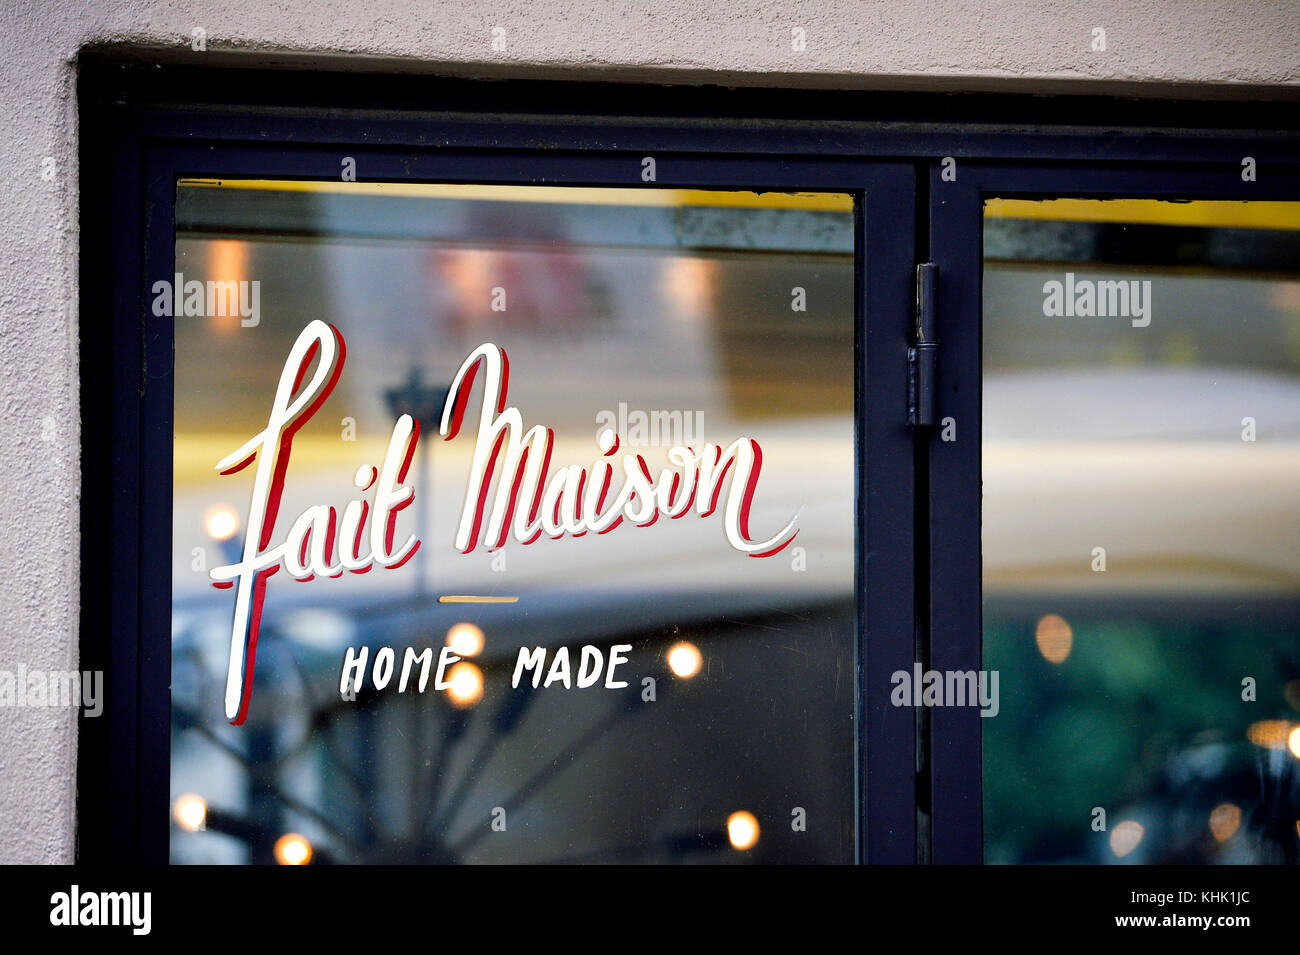 Home made cooking sign on a Shop Window of a restaurant, Paris 9th, France - Stock Image